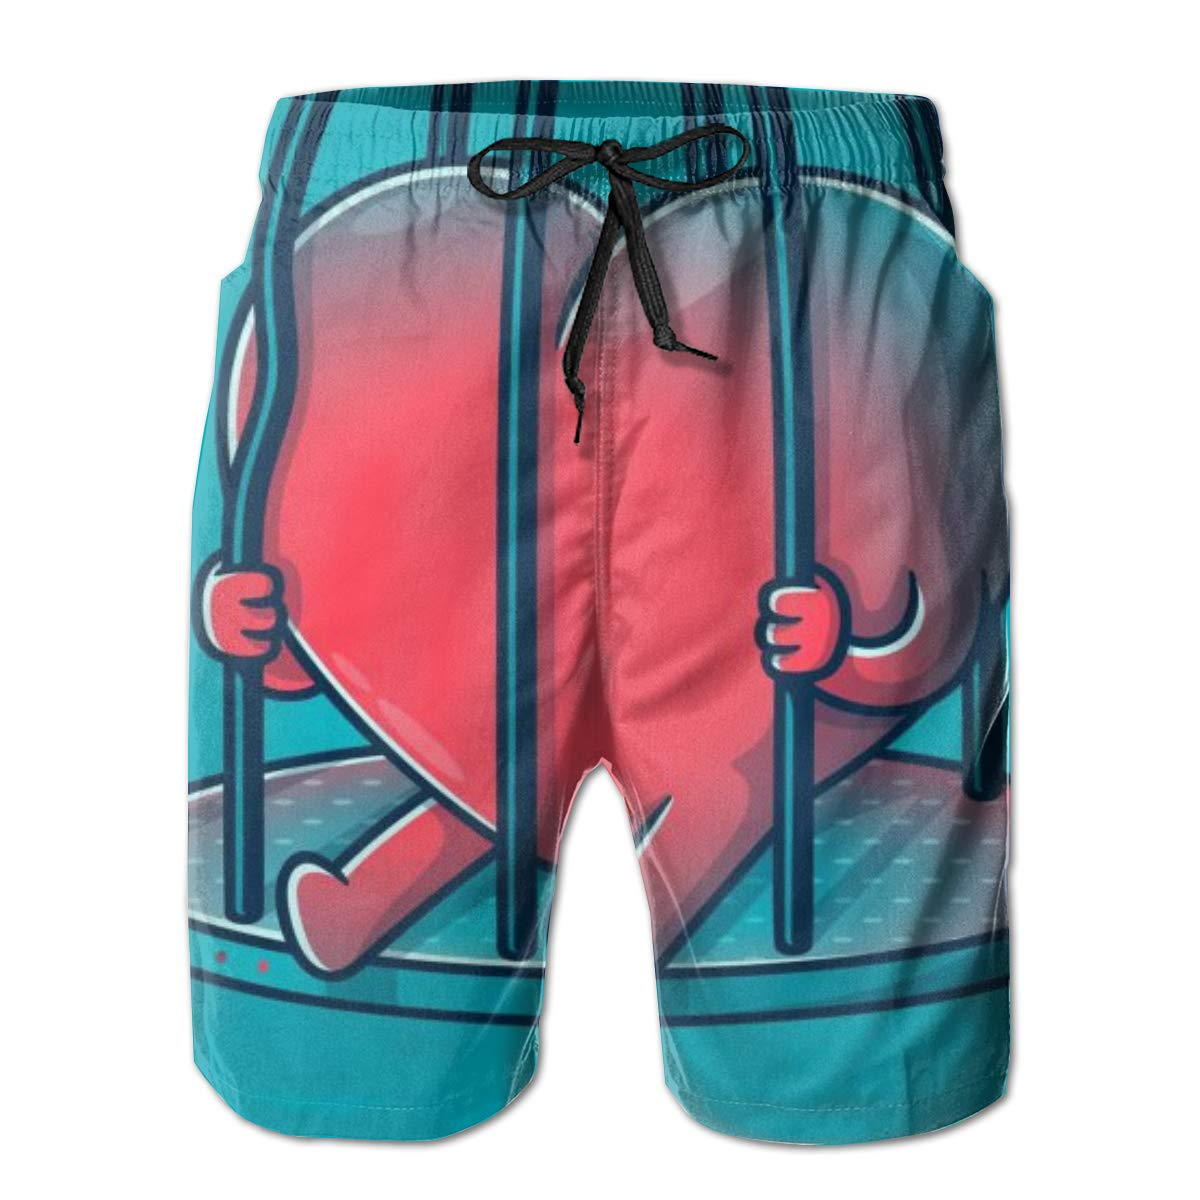 Oiyucv Mens Swim Trunks Red Heart Quick Dry Board Shorts Bathing Suits Swimwear Volley Beach Trunks